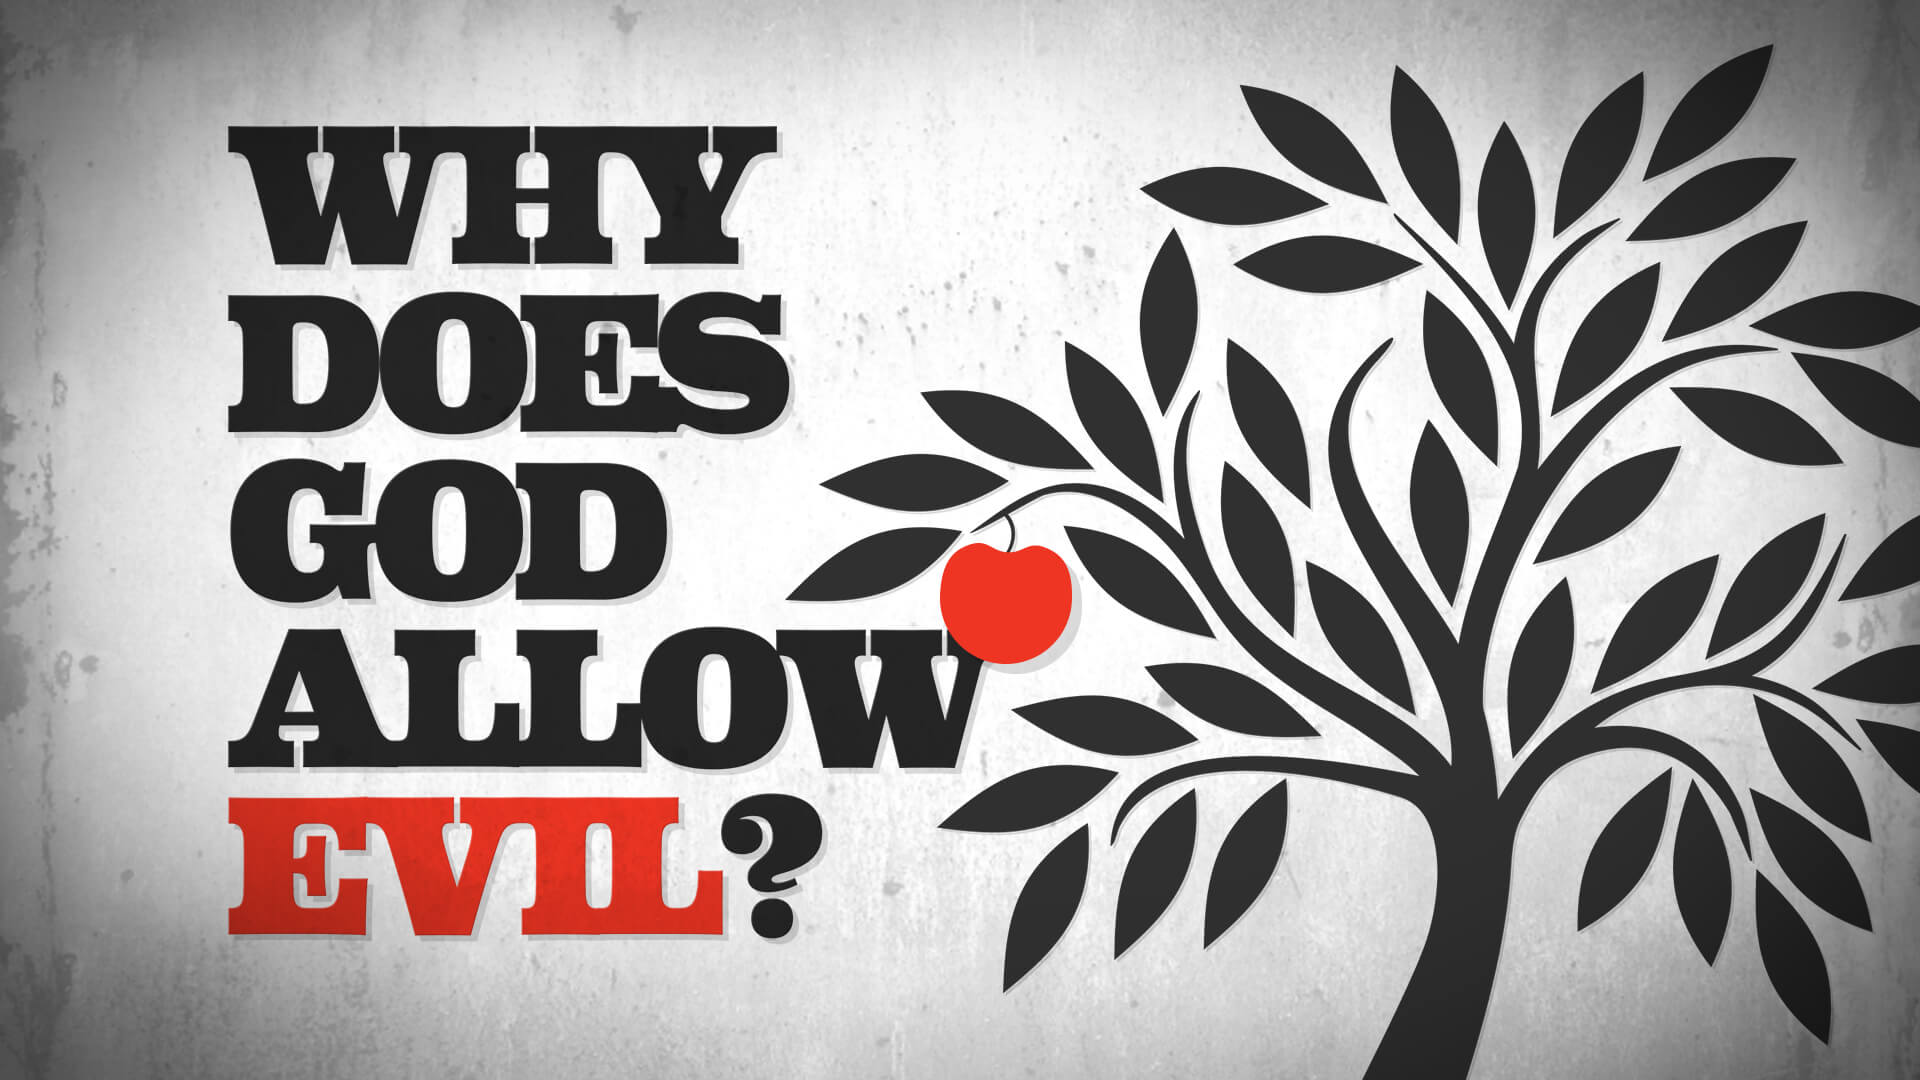 why does god allow evil There is no doubt that sin, and the evil that accompanies it, exists in this world when atrocious examples of evil come to our attention, people commonly wonder why god.